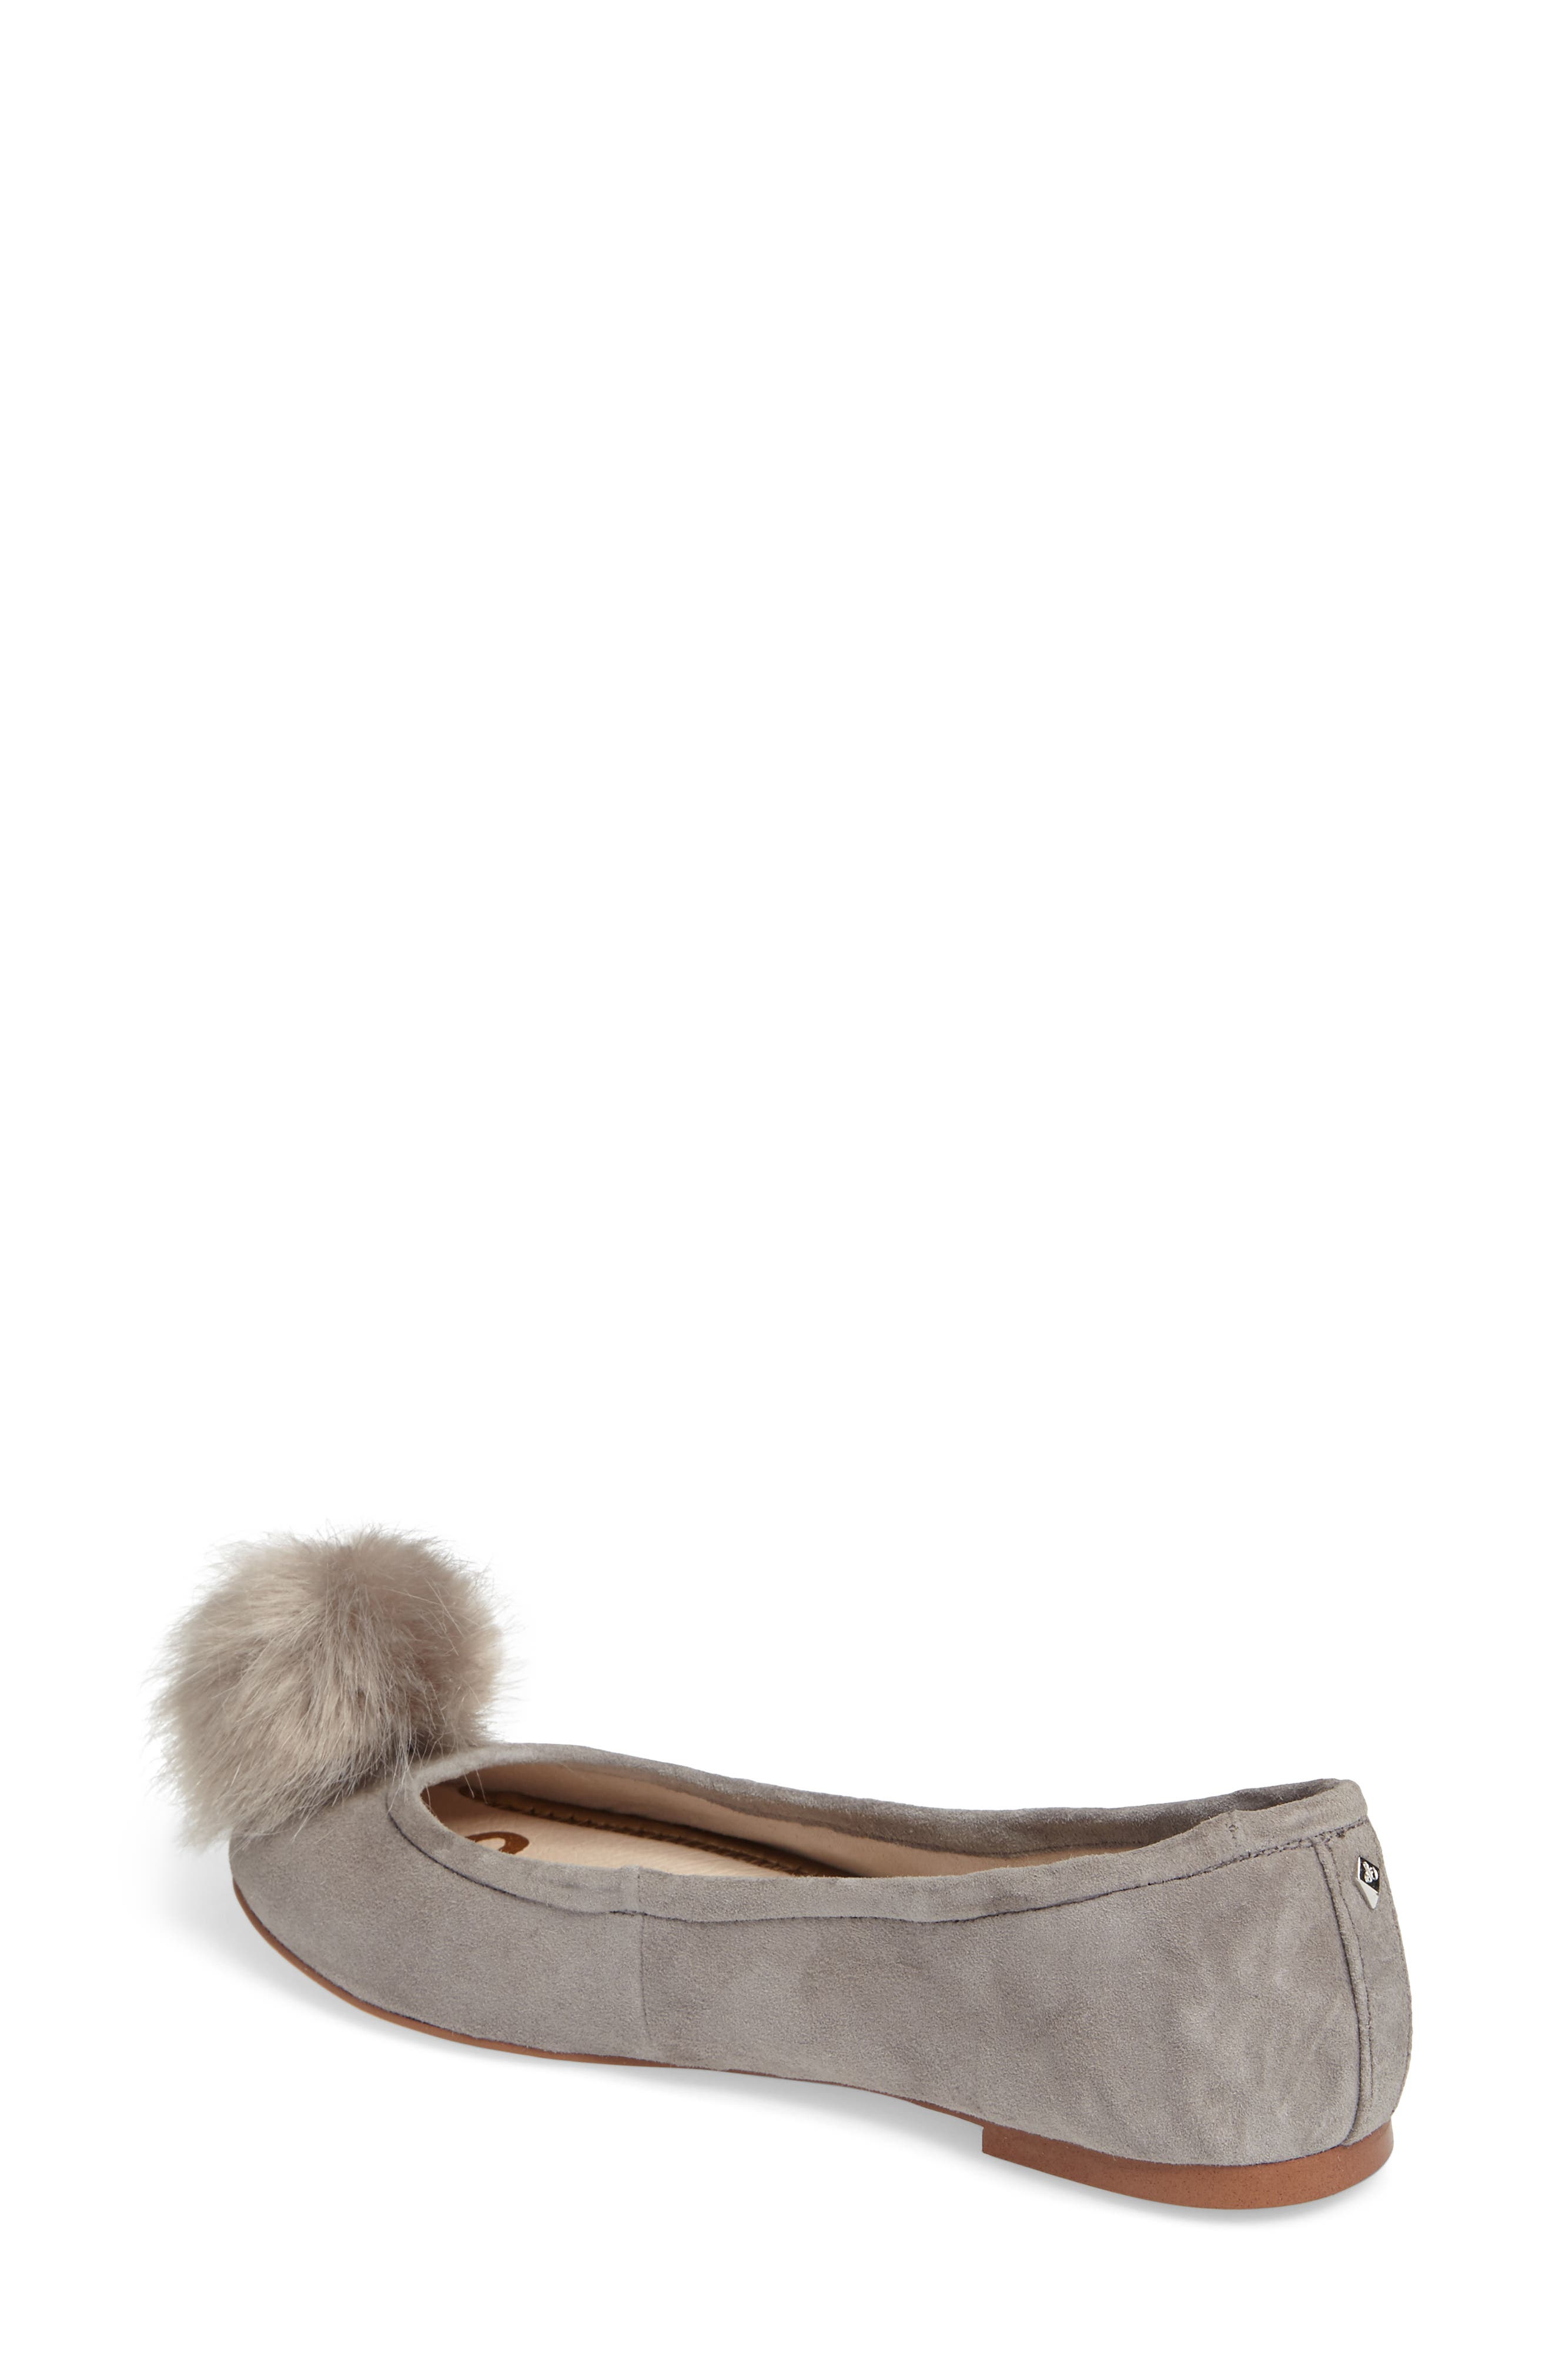 Farina Flat with Faux Fur Pompom,                             Alternate thumbnail 2, color,                             020